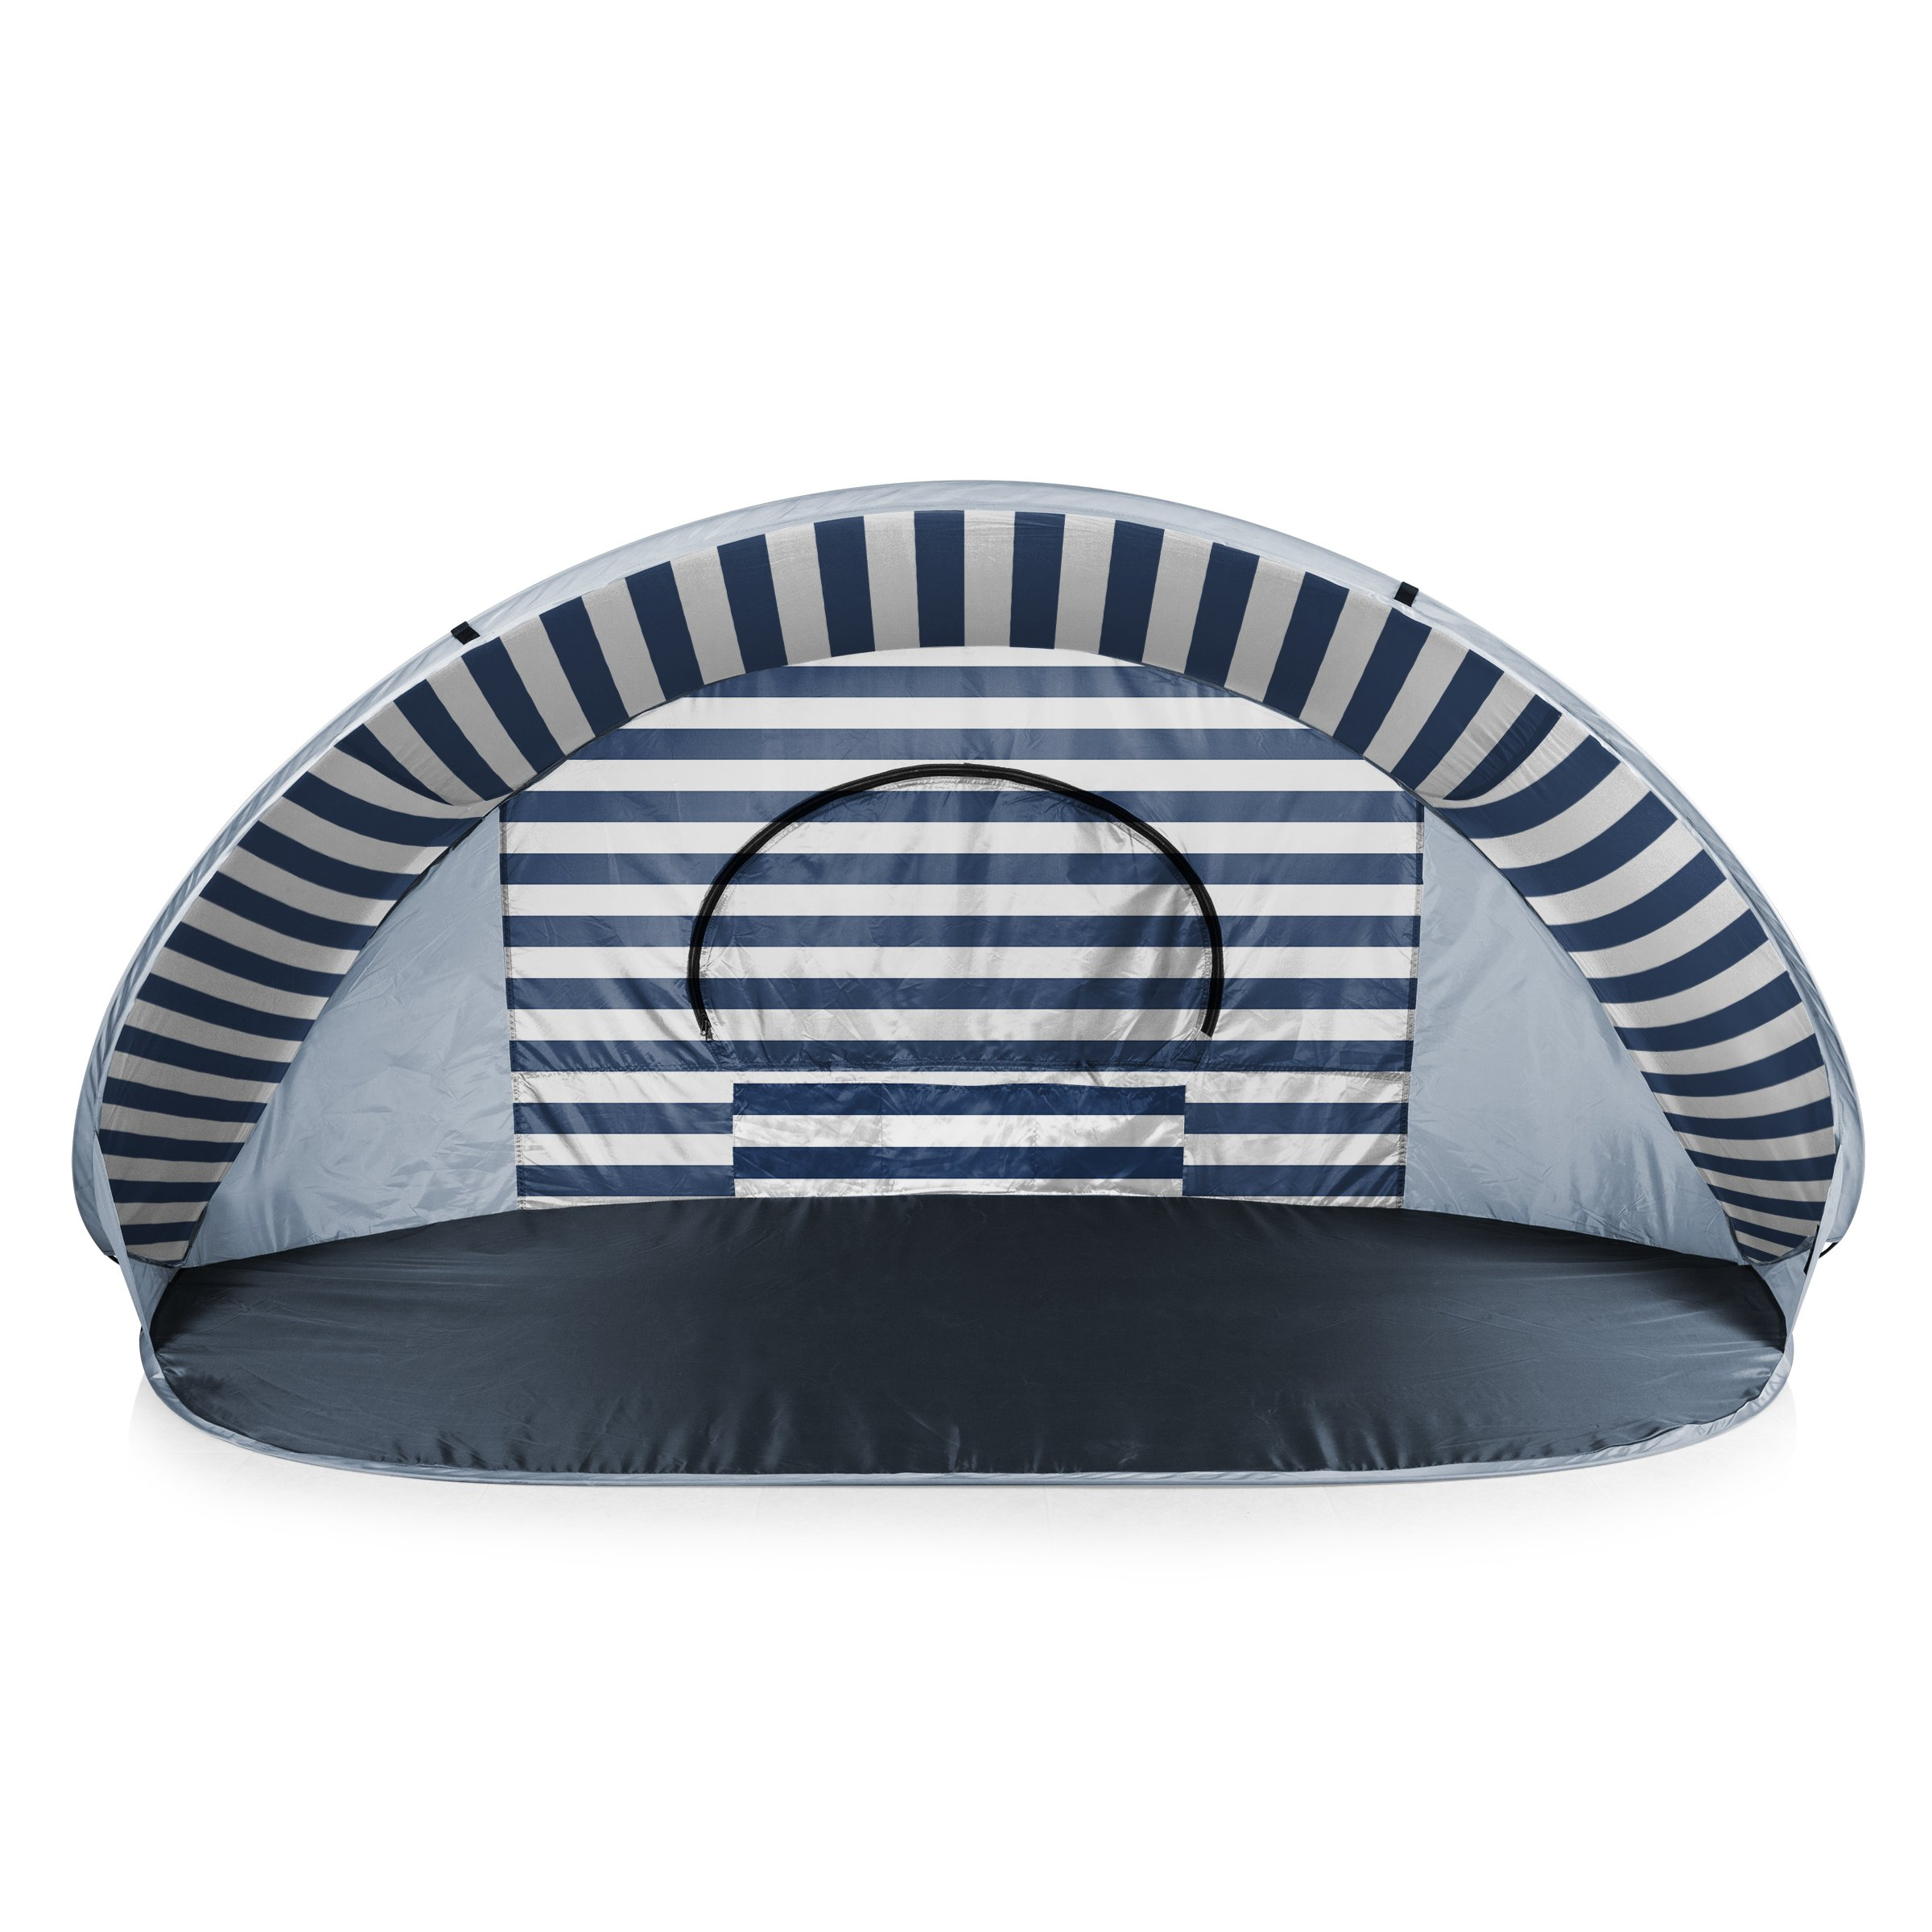 ONIVA - a Picnic Time Brand Manta Portable Pop-Up Sun/Wind Shelter, Navy/White Stripes by ONIVA - a Picnic Time brand